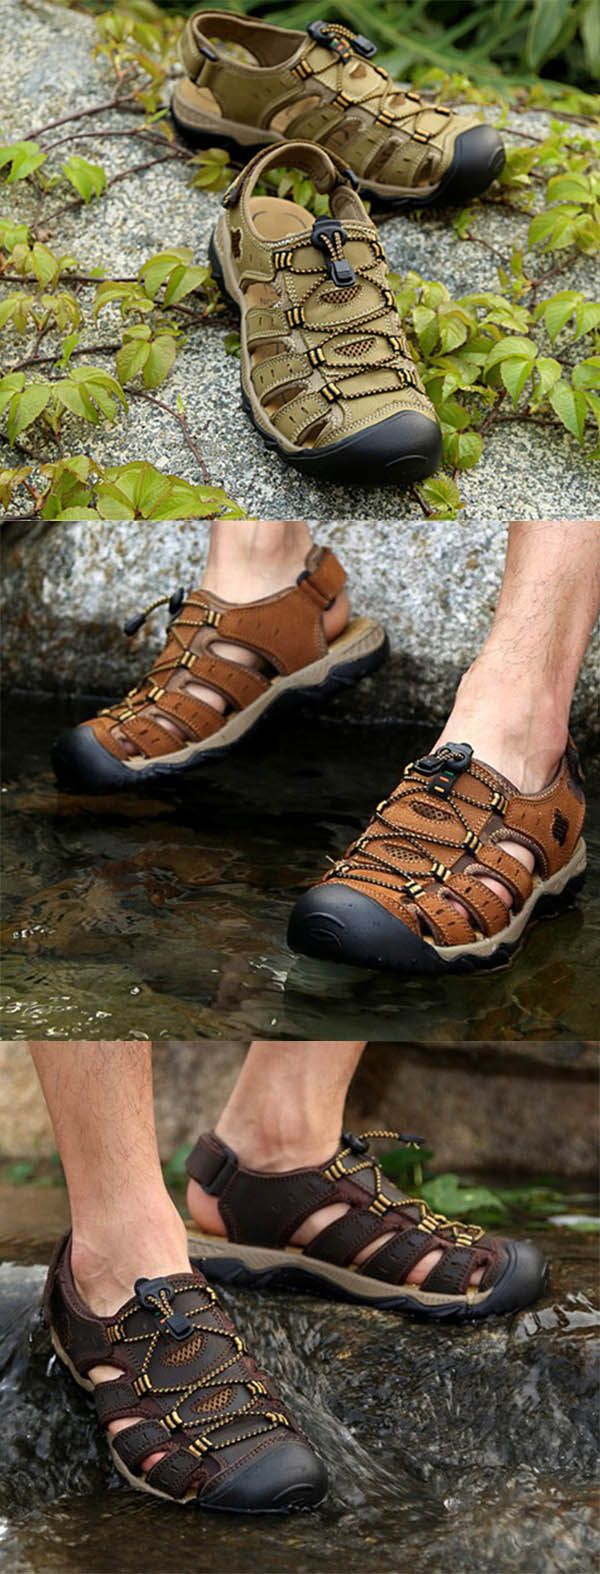 US$43.26 + Free shipping. Men's shoes, men's sandals, summer shoes, men leather sandals, beach sandals shoes. Leather material, breathable and casual, perfect for summer!